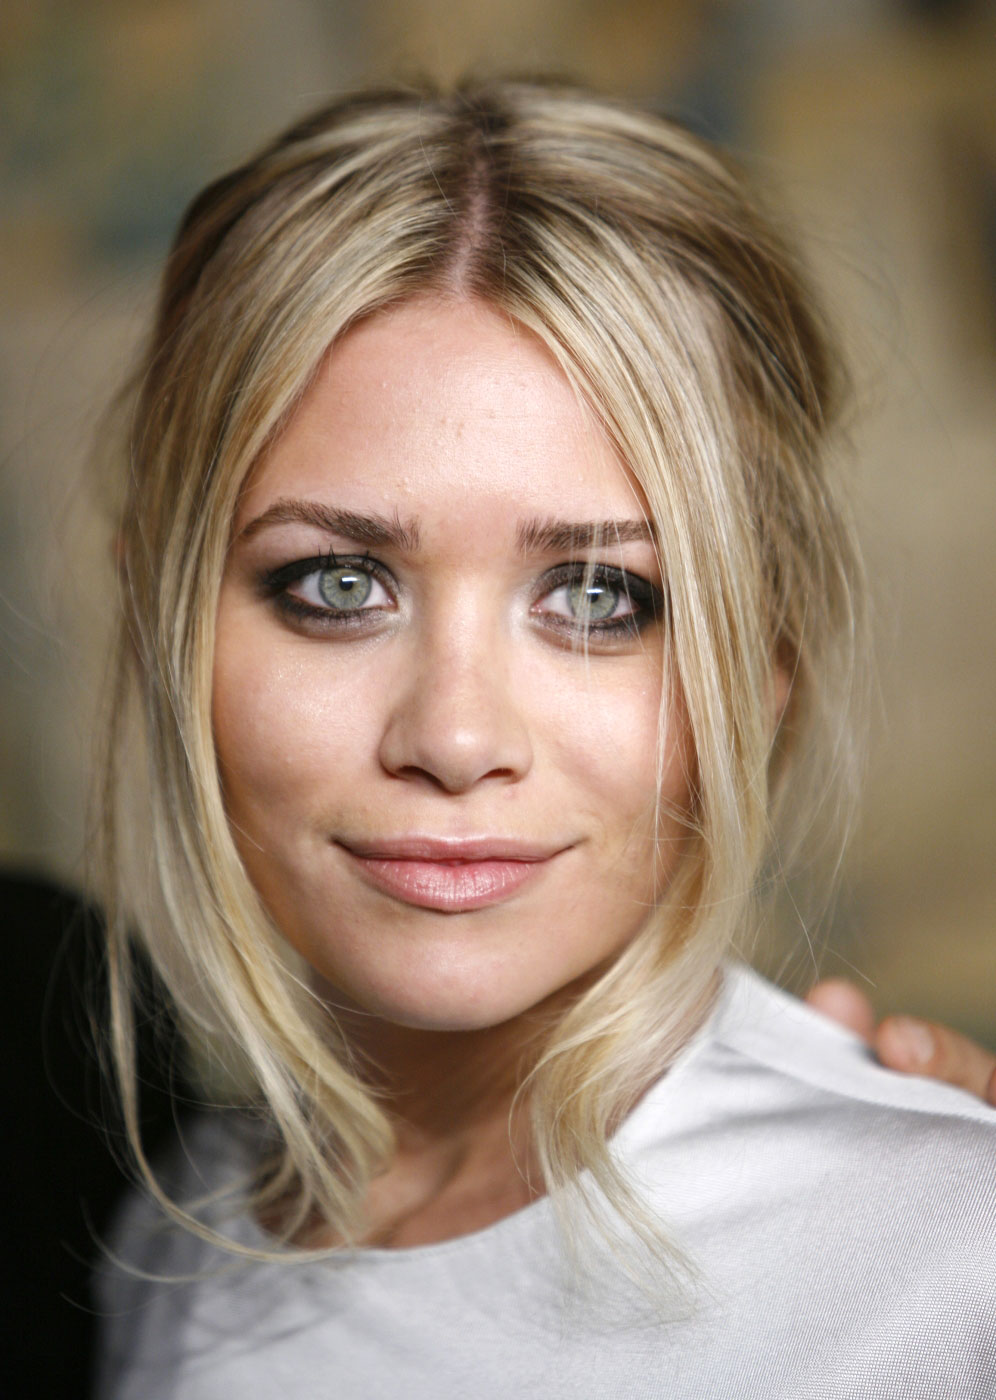 Easy Female Hairstyles Ashley Olsen Beautiful Hairstyles Pictures Yusrablog